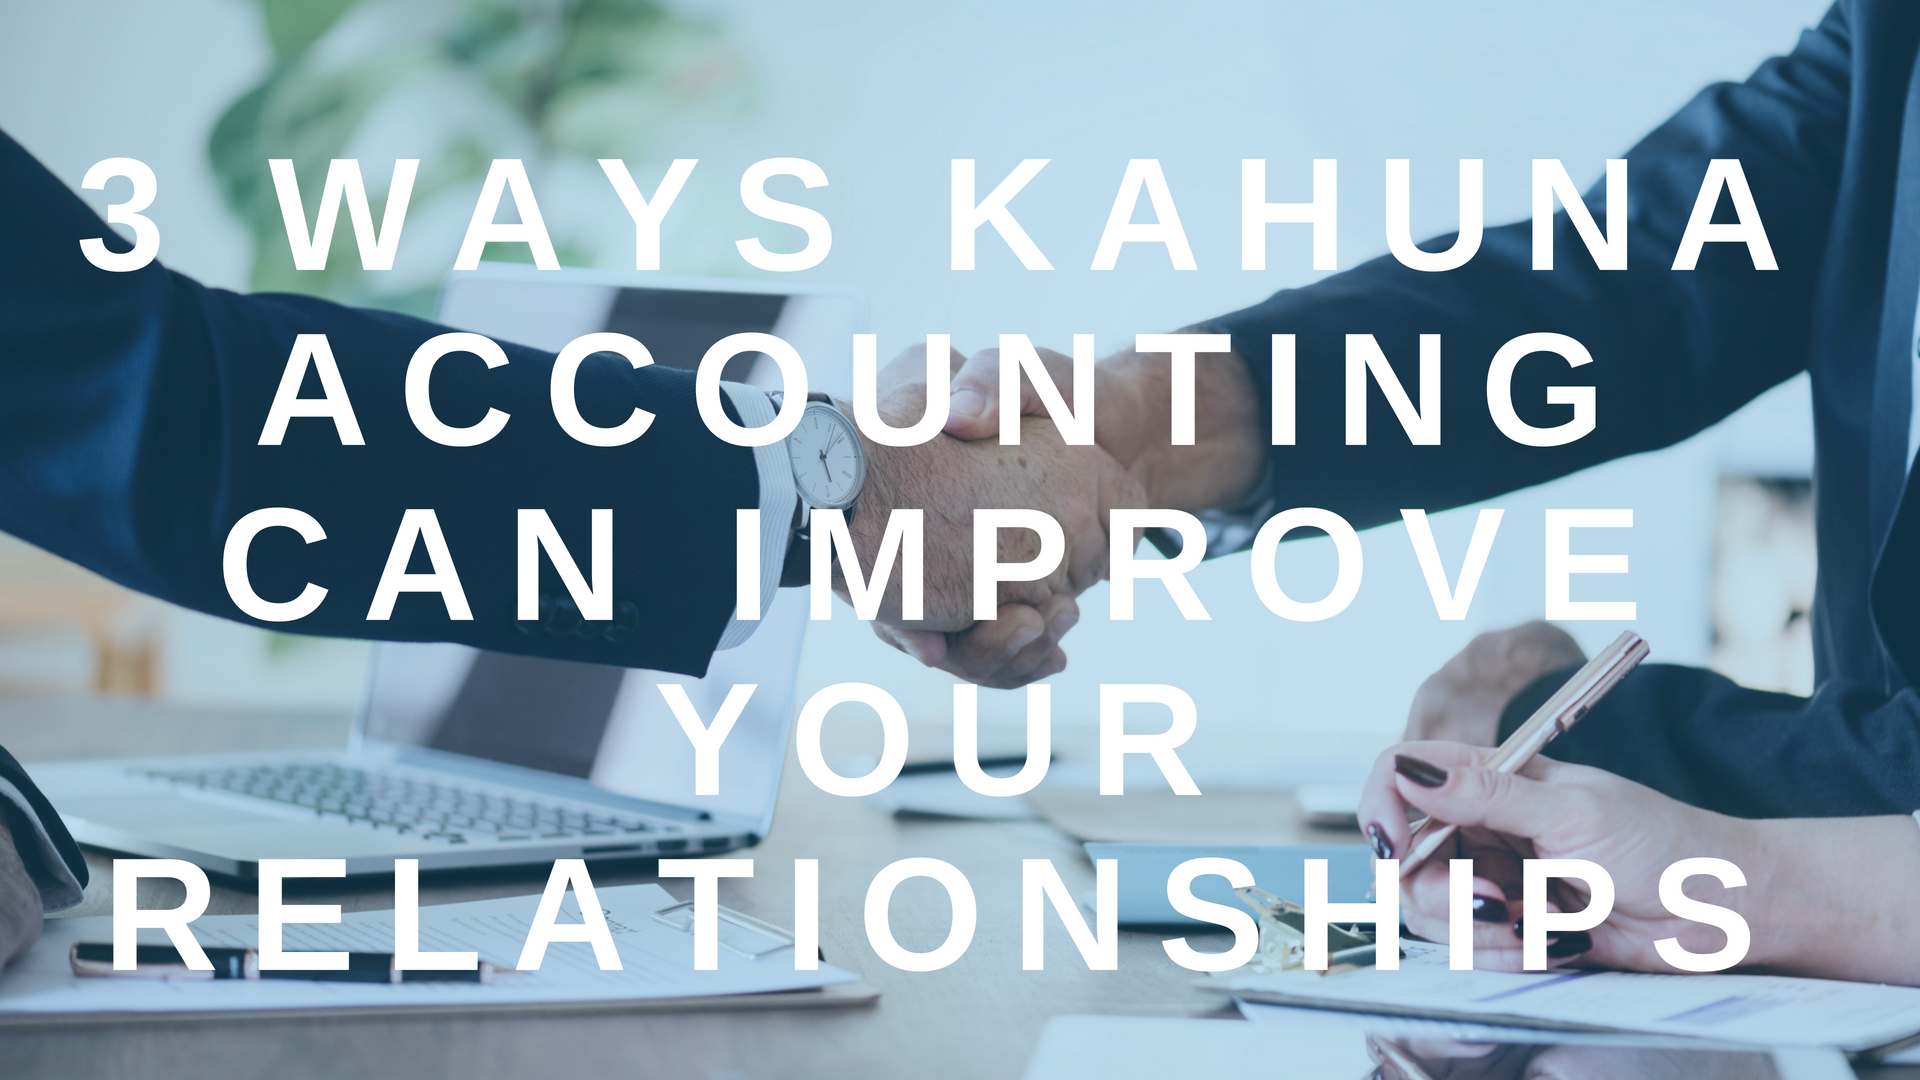 3 Ways Kahuna Accounting Can Improve Your Relationships